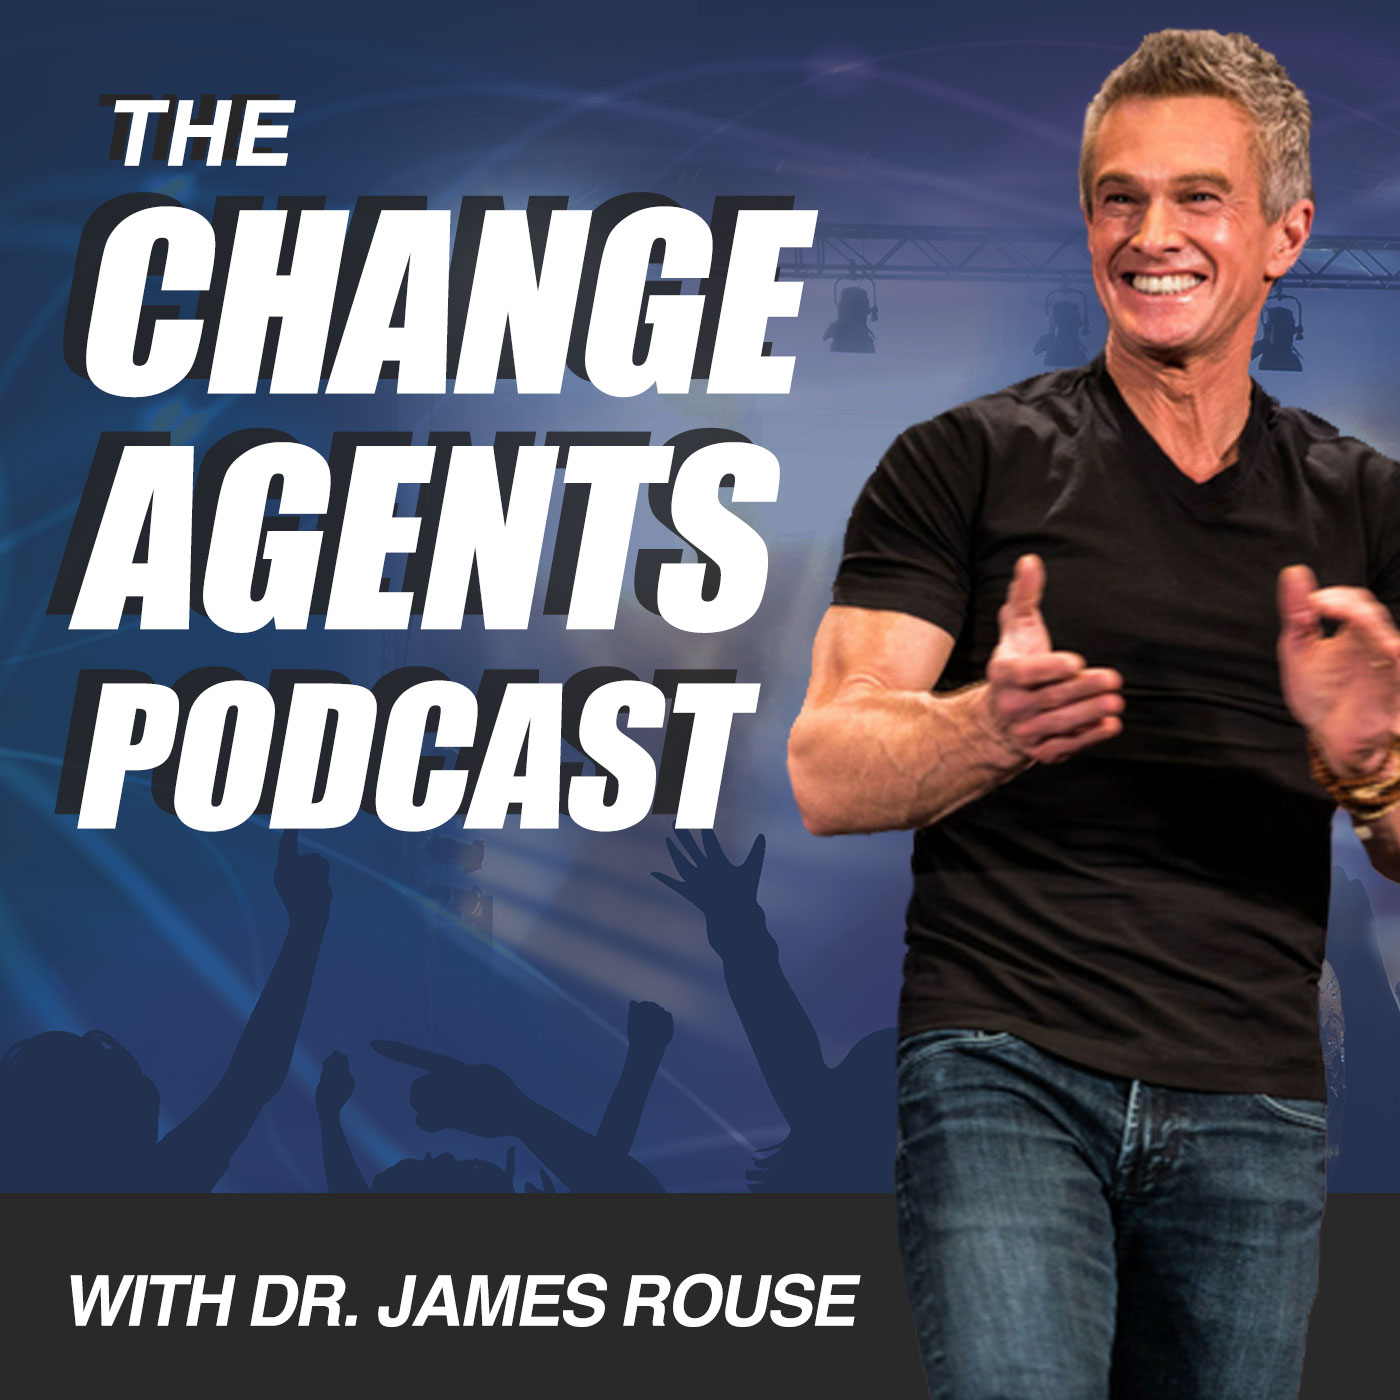 The Change Agents Podcast with Dr. James Rouse show art